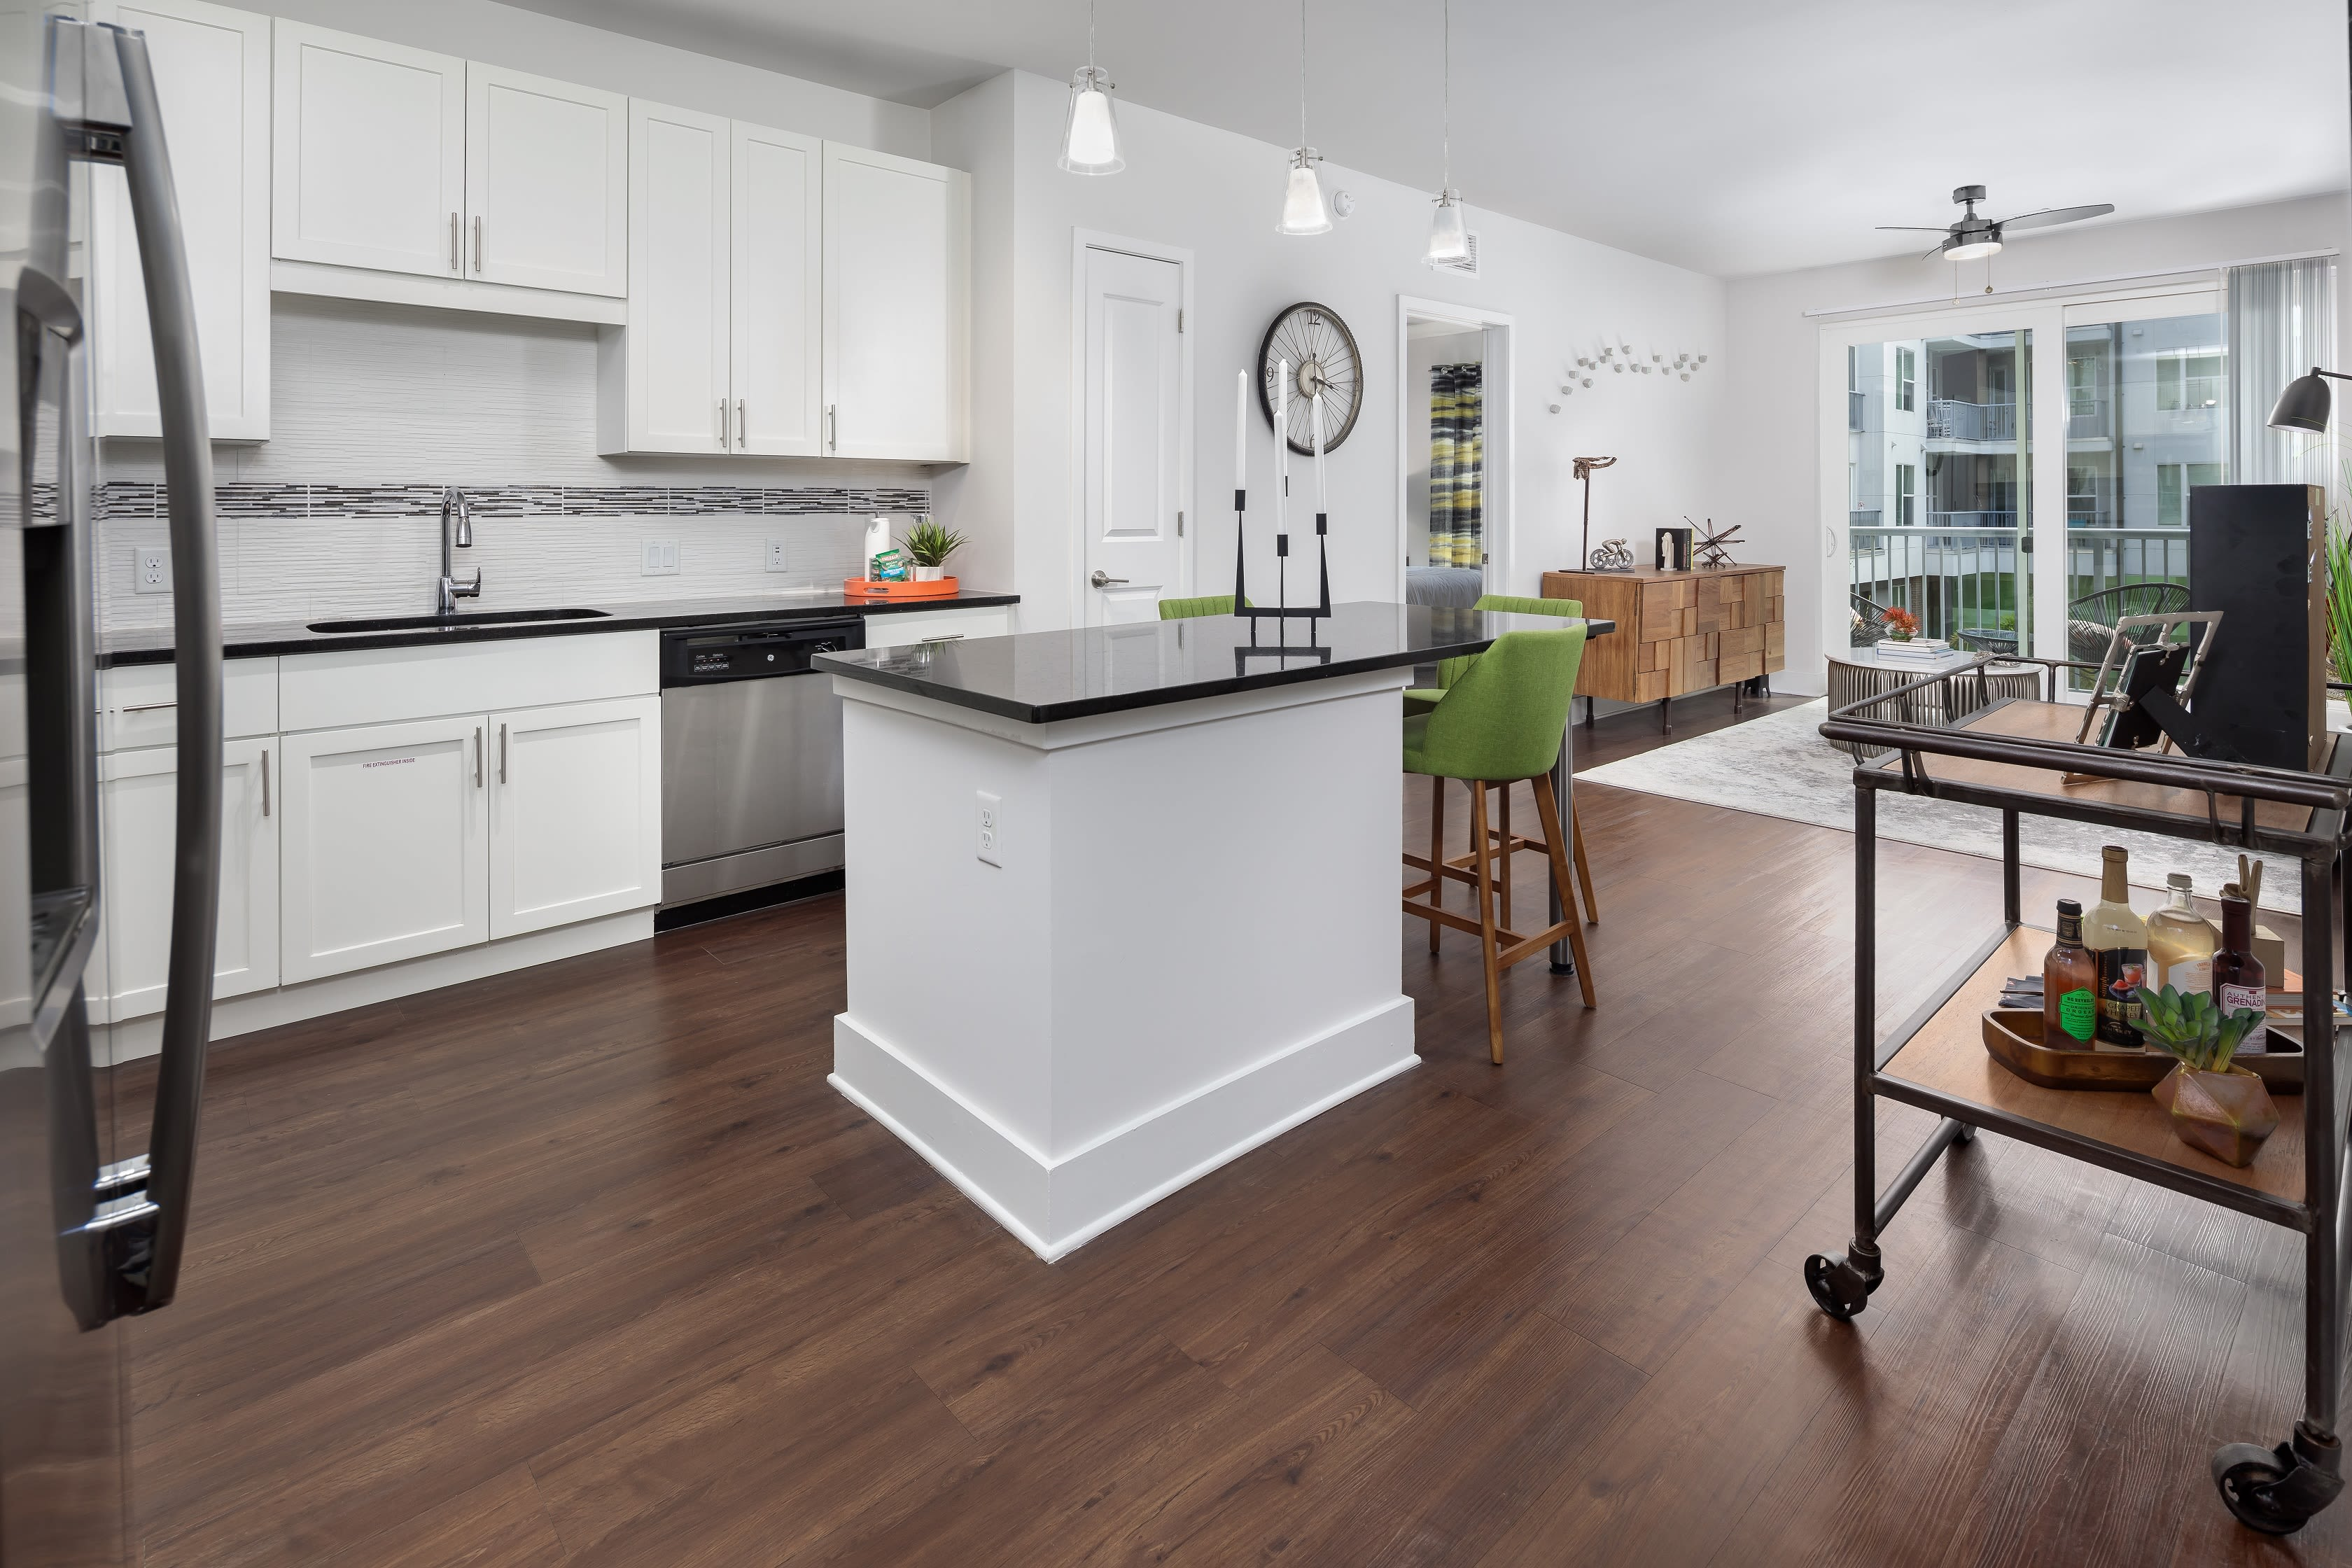 Kitchen with stainless steel appliances and granite style countertops at Central Station on Orange in Orlando, Florida